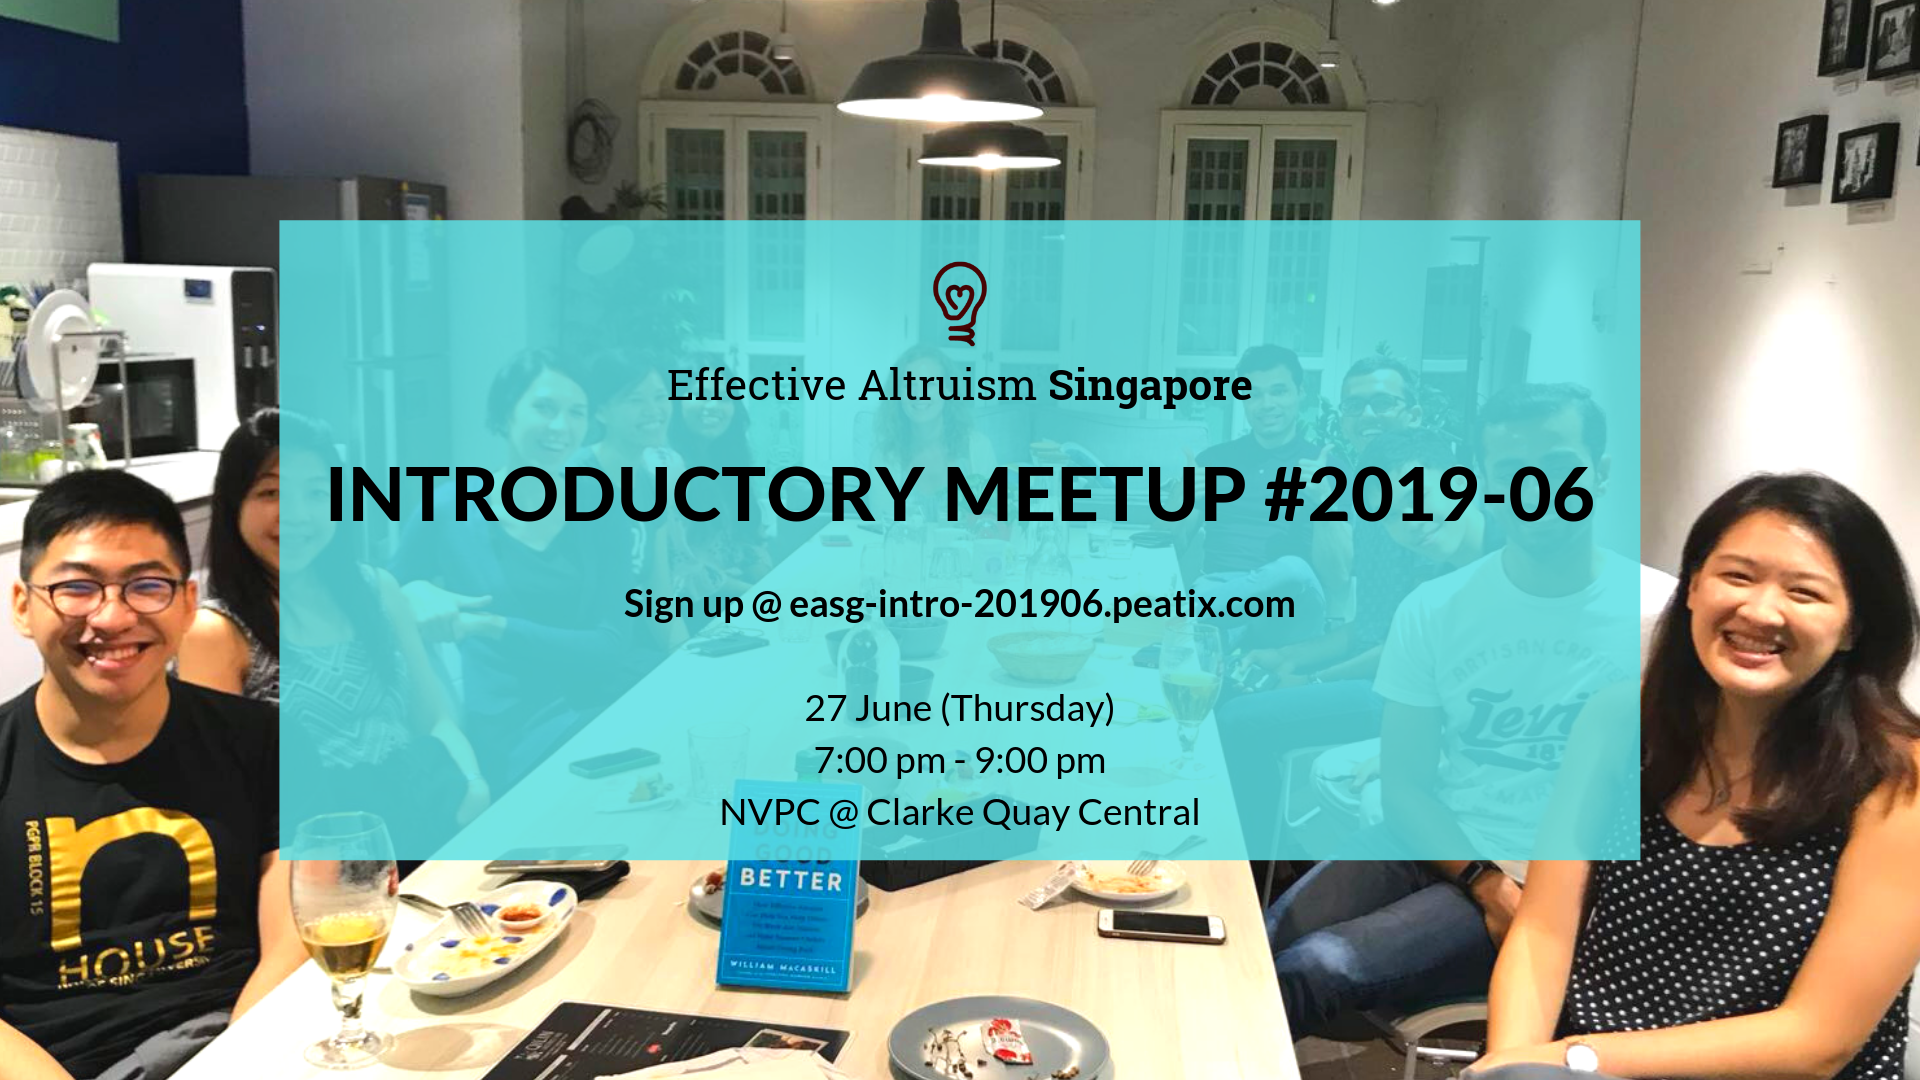 Effective Altruism Singapore_ Introductory Meetup #2019-06 Facebook Poster.png